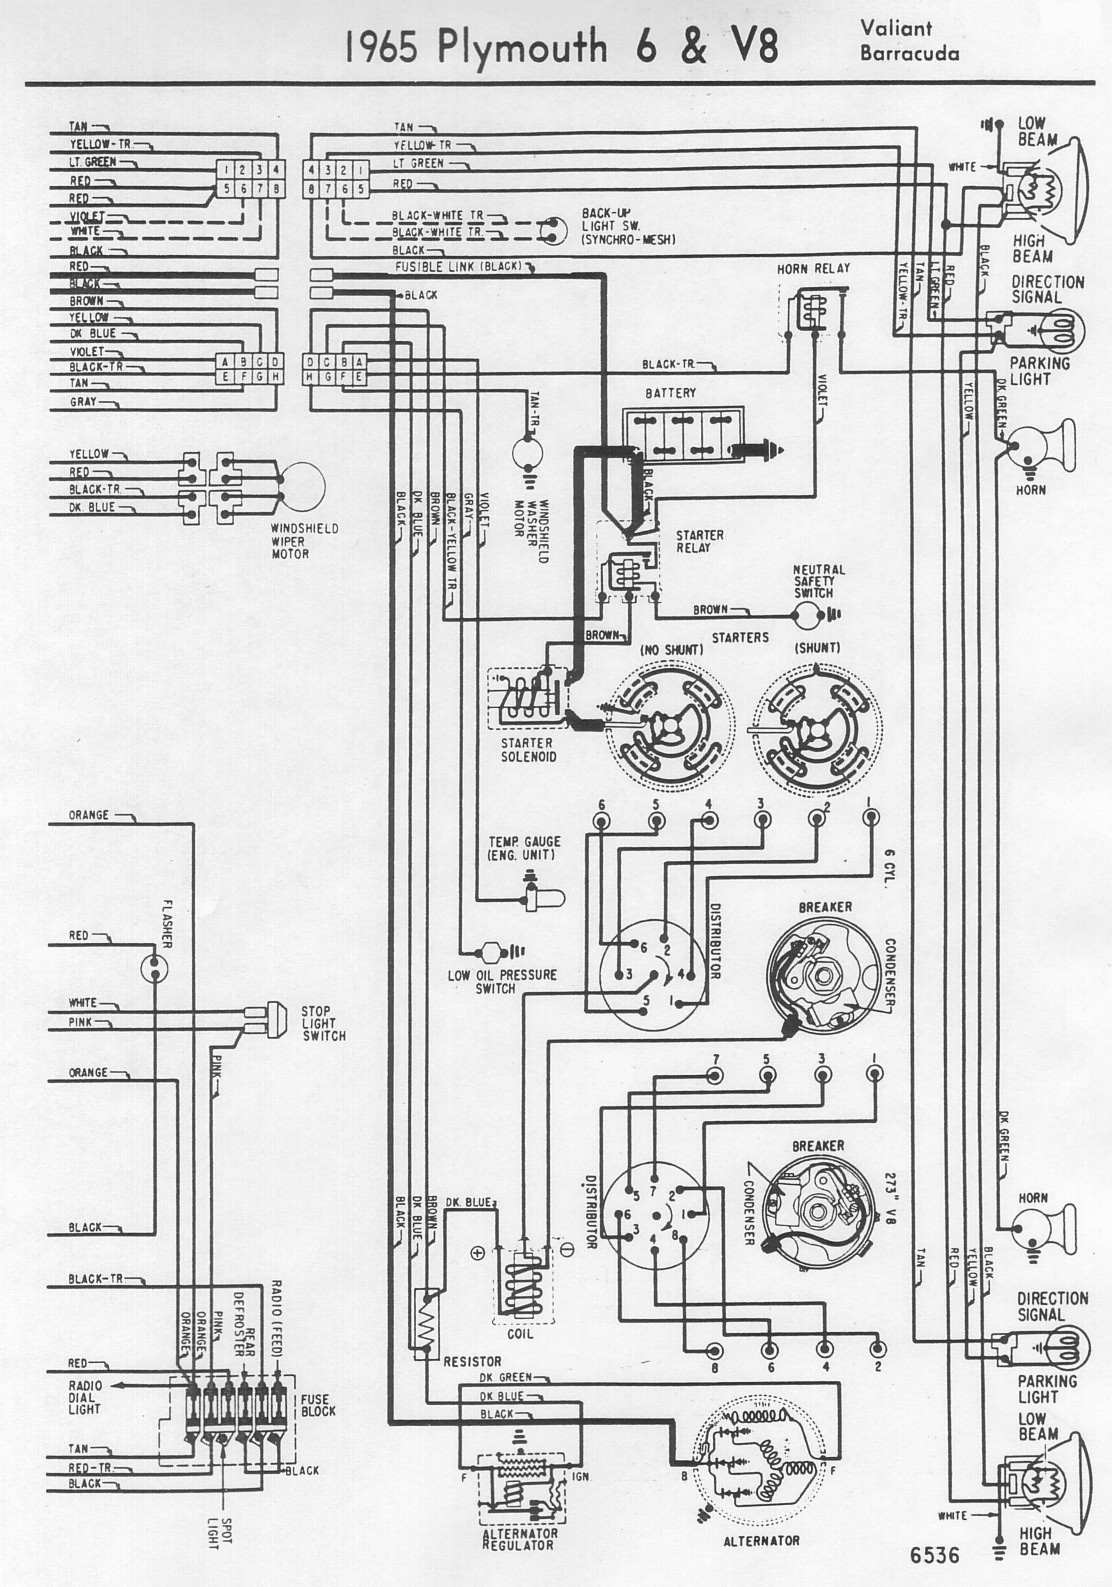 automotive relay wiring diagram automotive discover your wiring 1965 plymouth valiant or barracuda